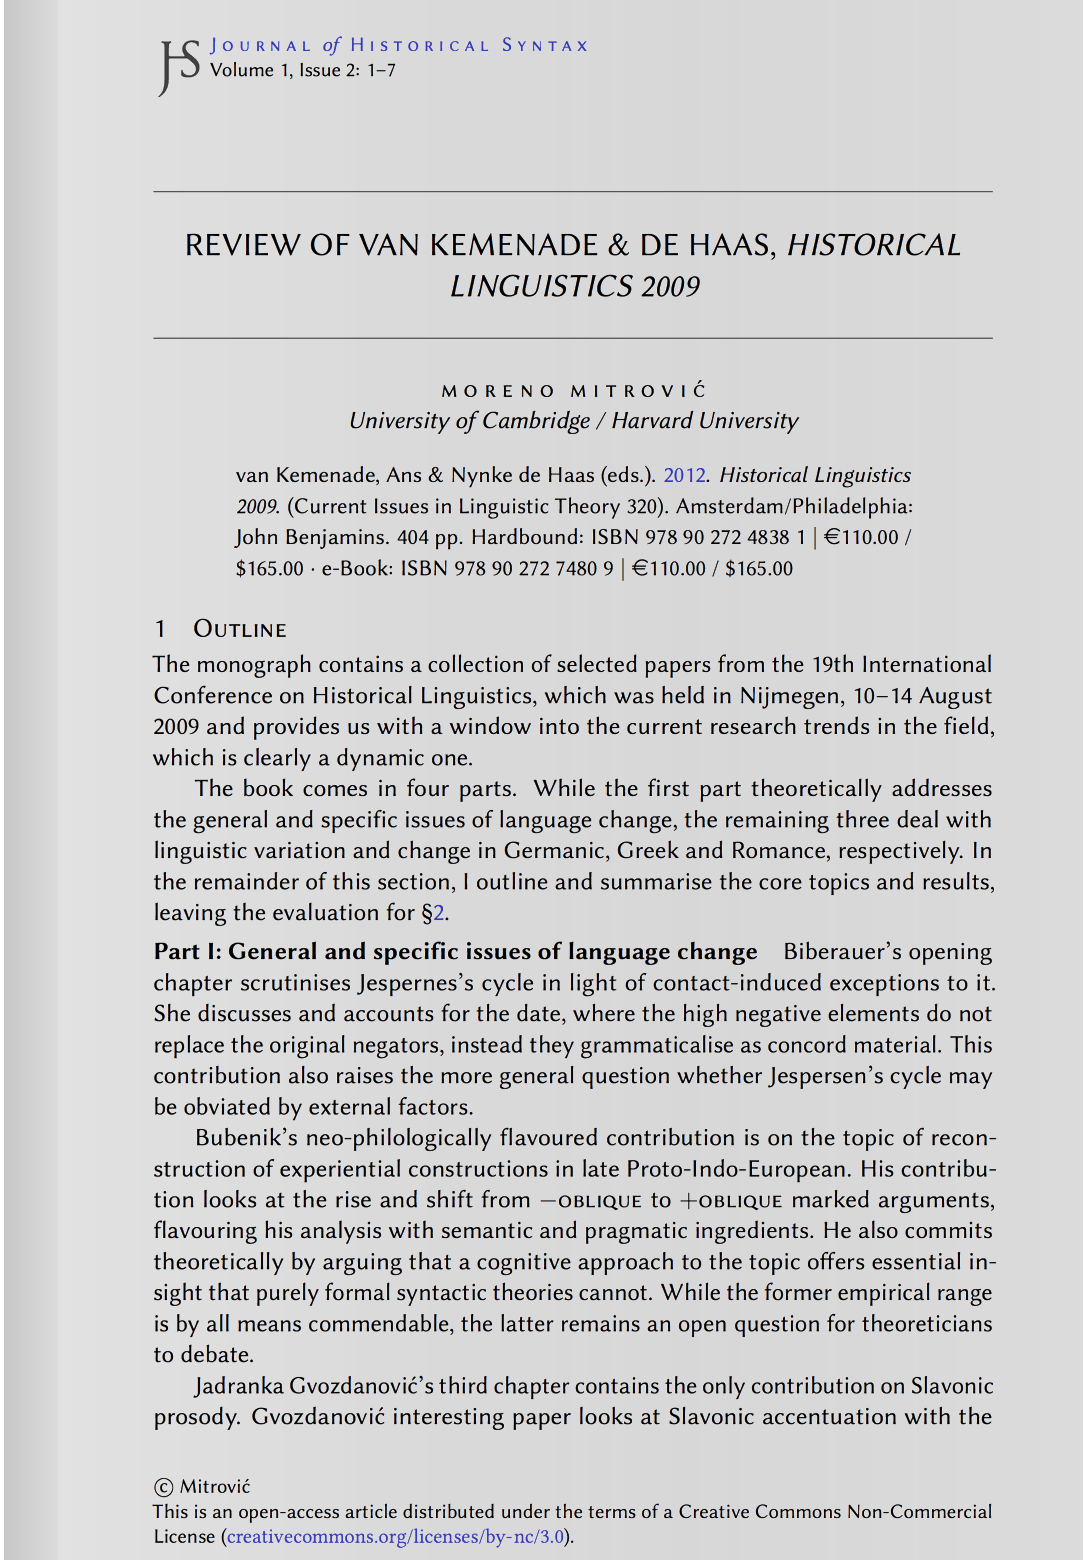 Review of van Kemenade & de Haas (2012), Historical Linguistics 2009